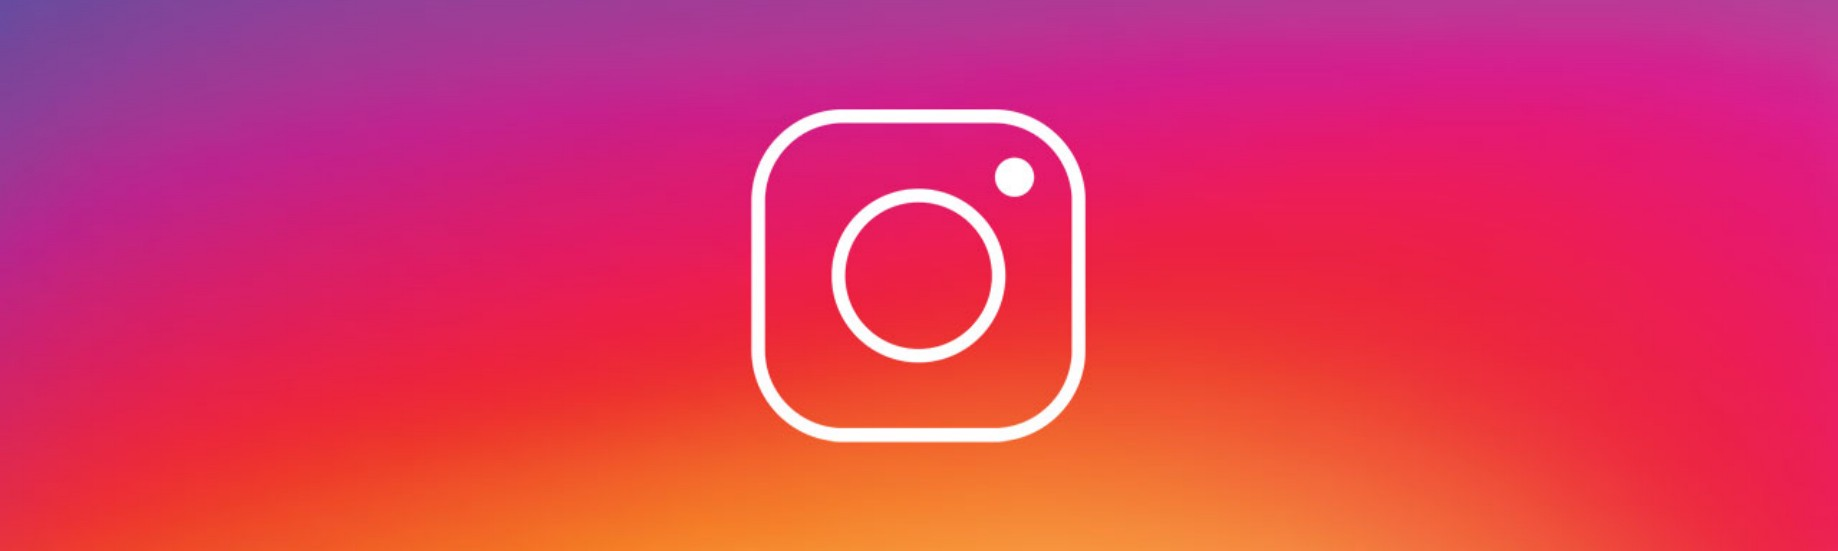 Is It Possible To Promote Your Instagram Account For Free The Answer Is Yes By Sofia Garner Medium